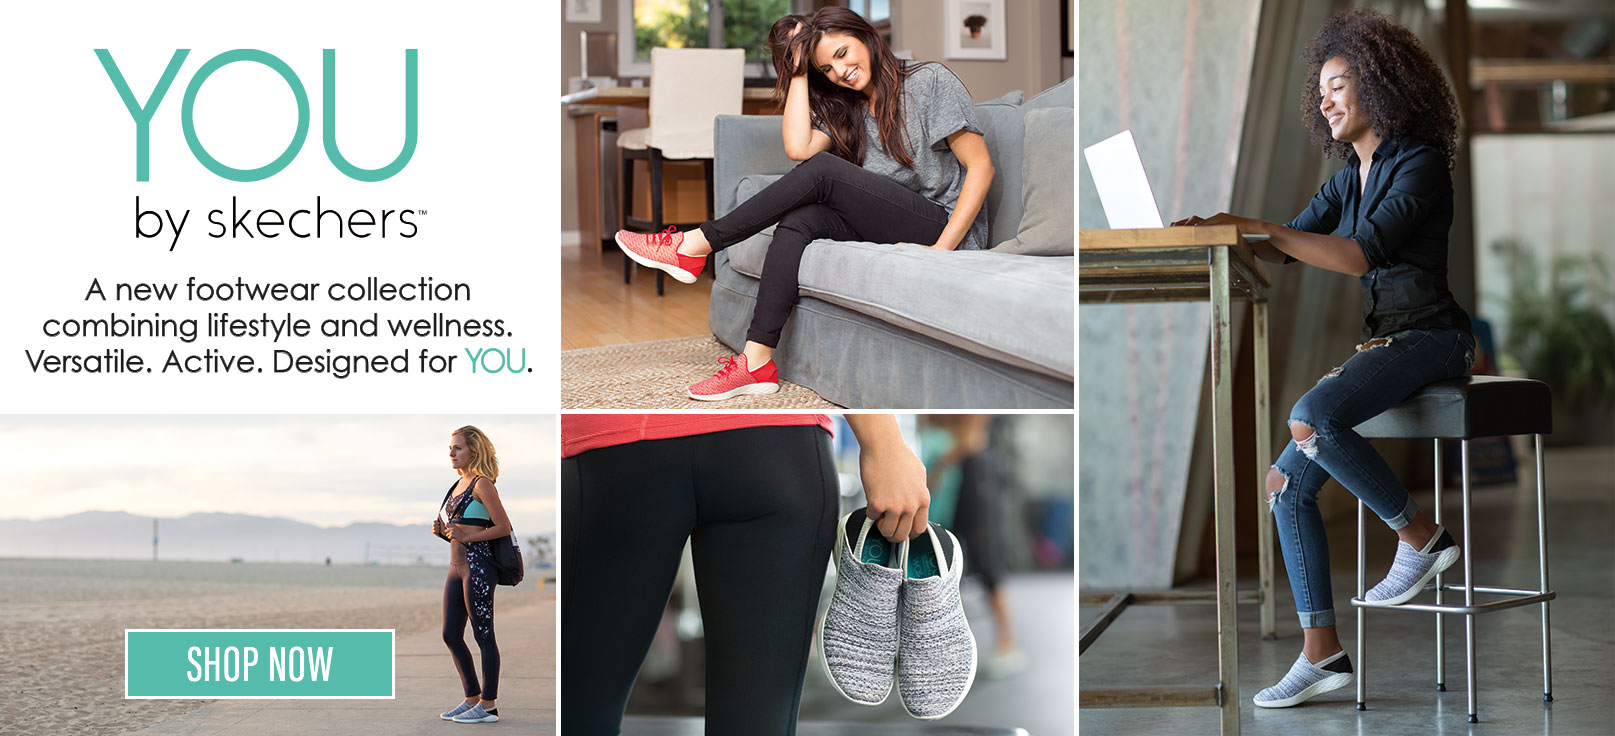 YOU by skechers, a lifestyle and wellness shoe collection